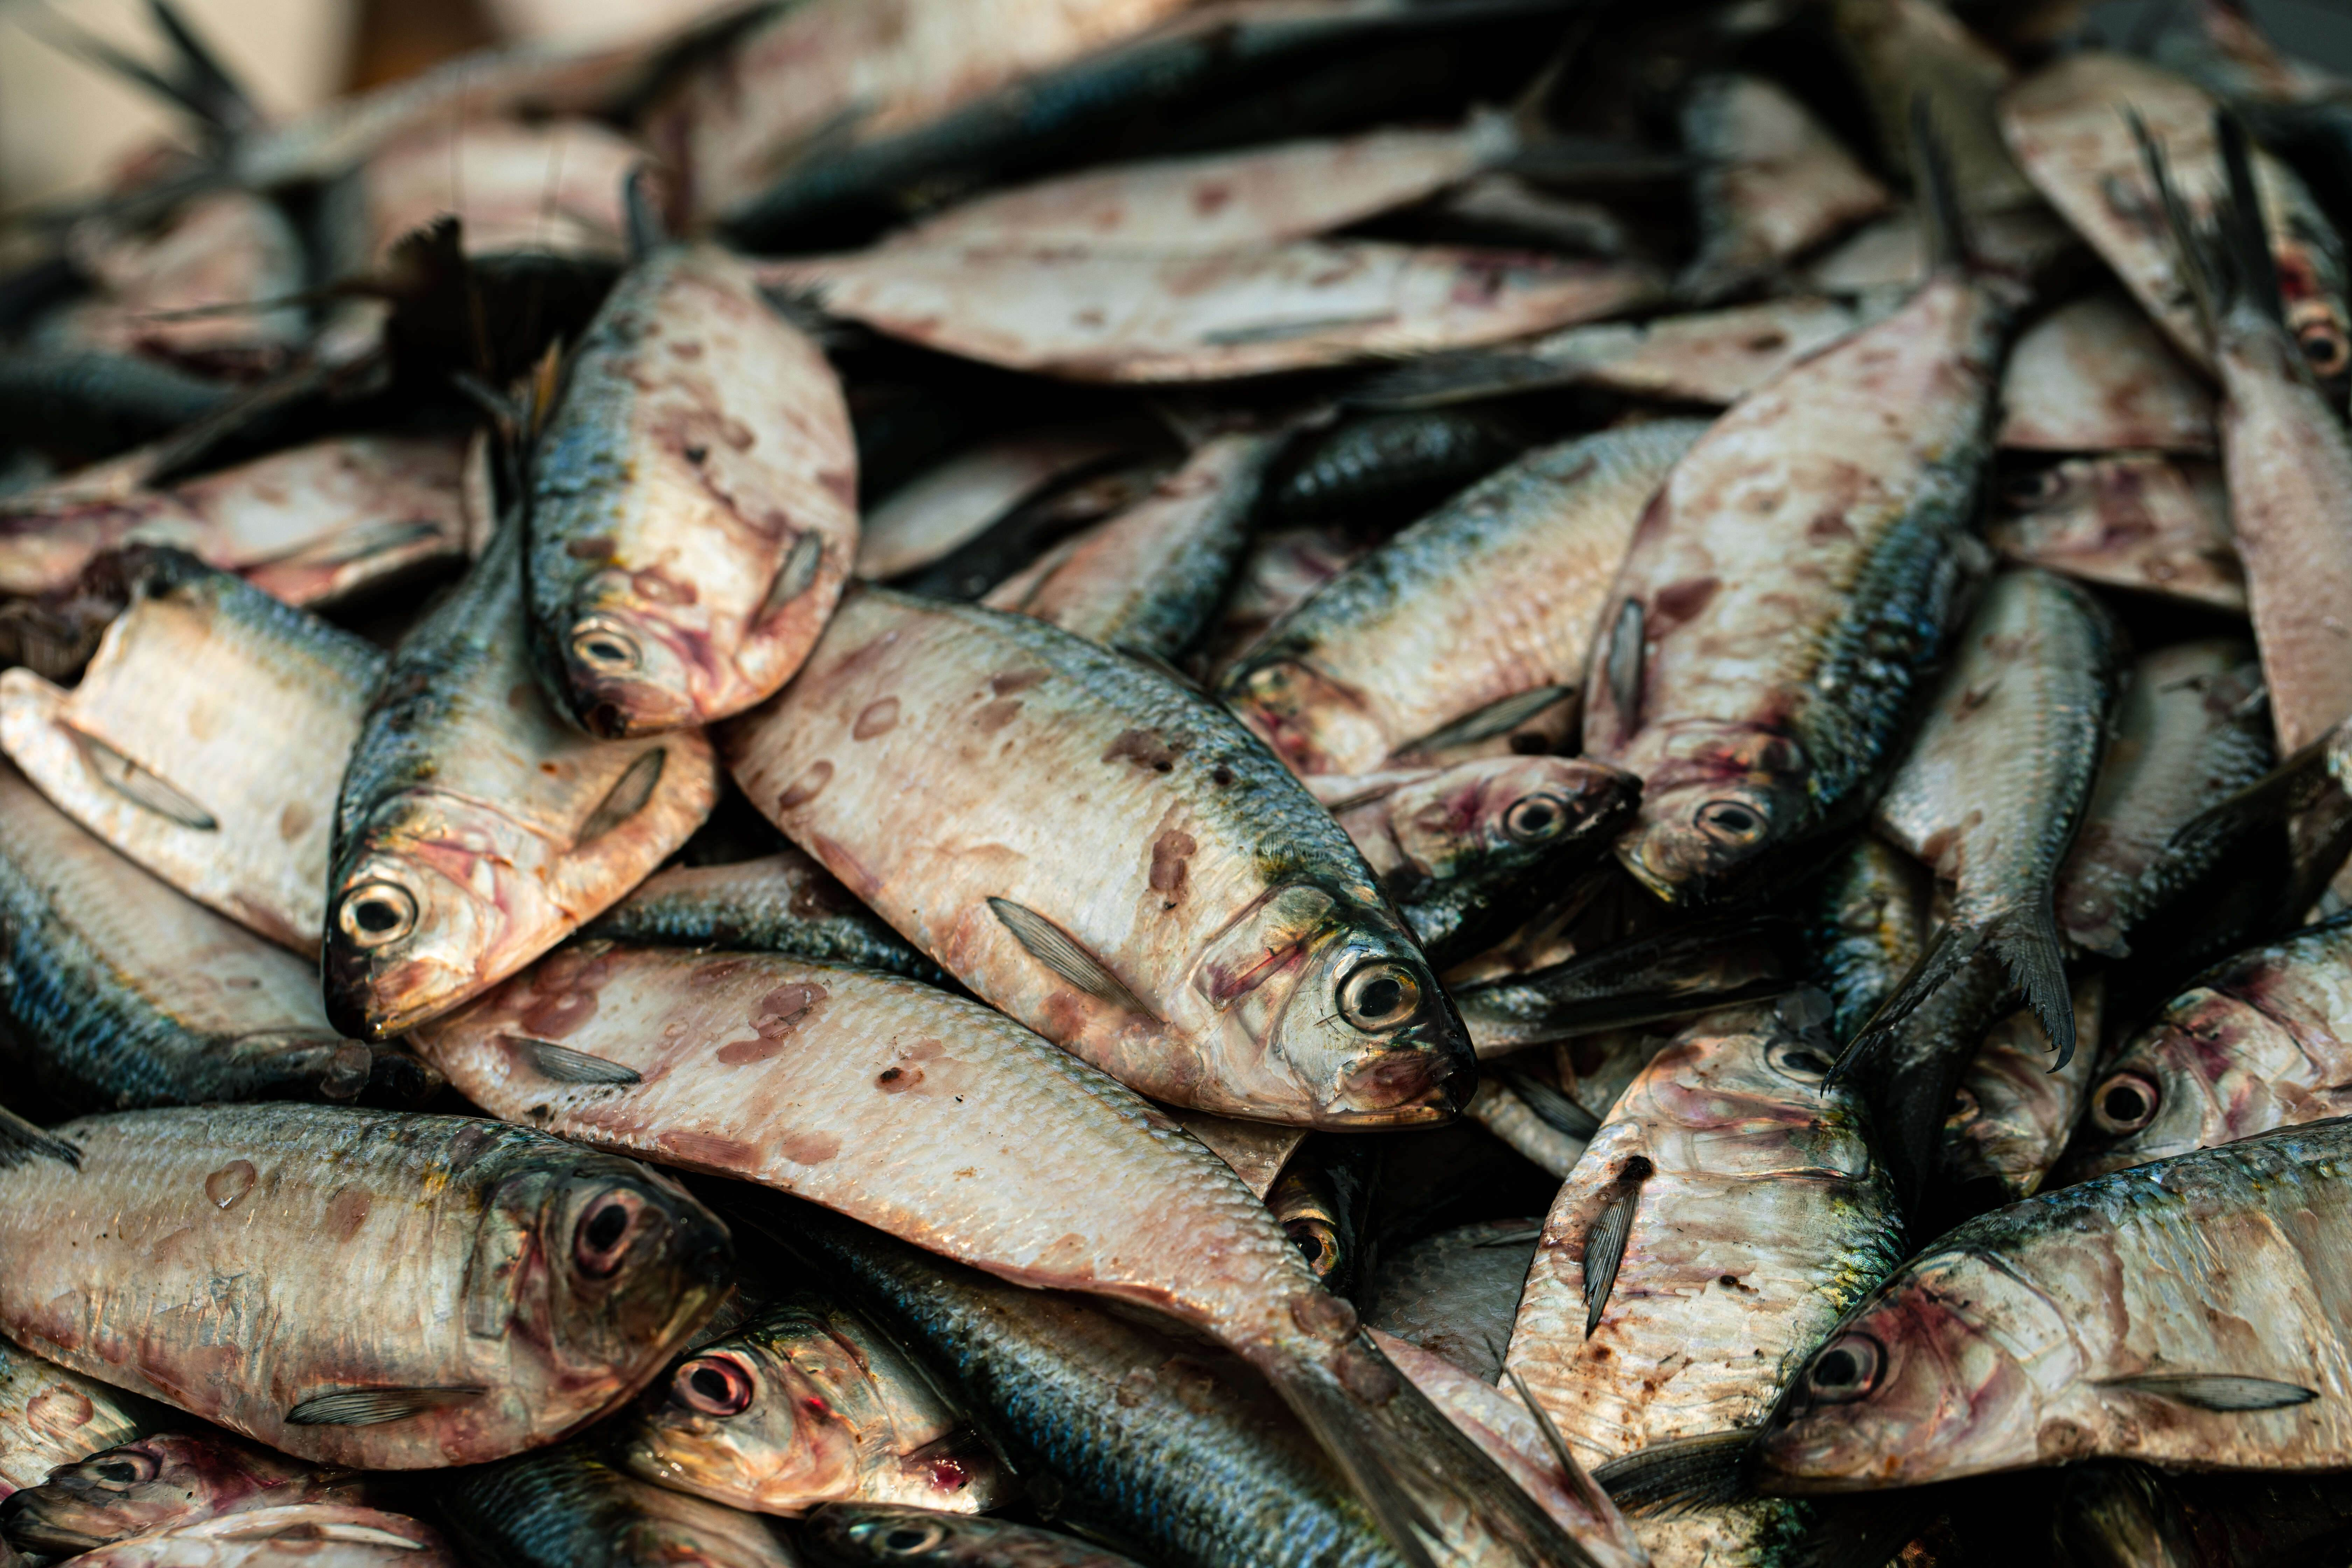 EU governments standing in the way of the fight to end secrecy around (over)fishing, say NGOs